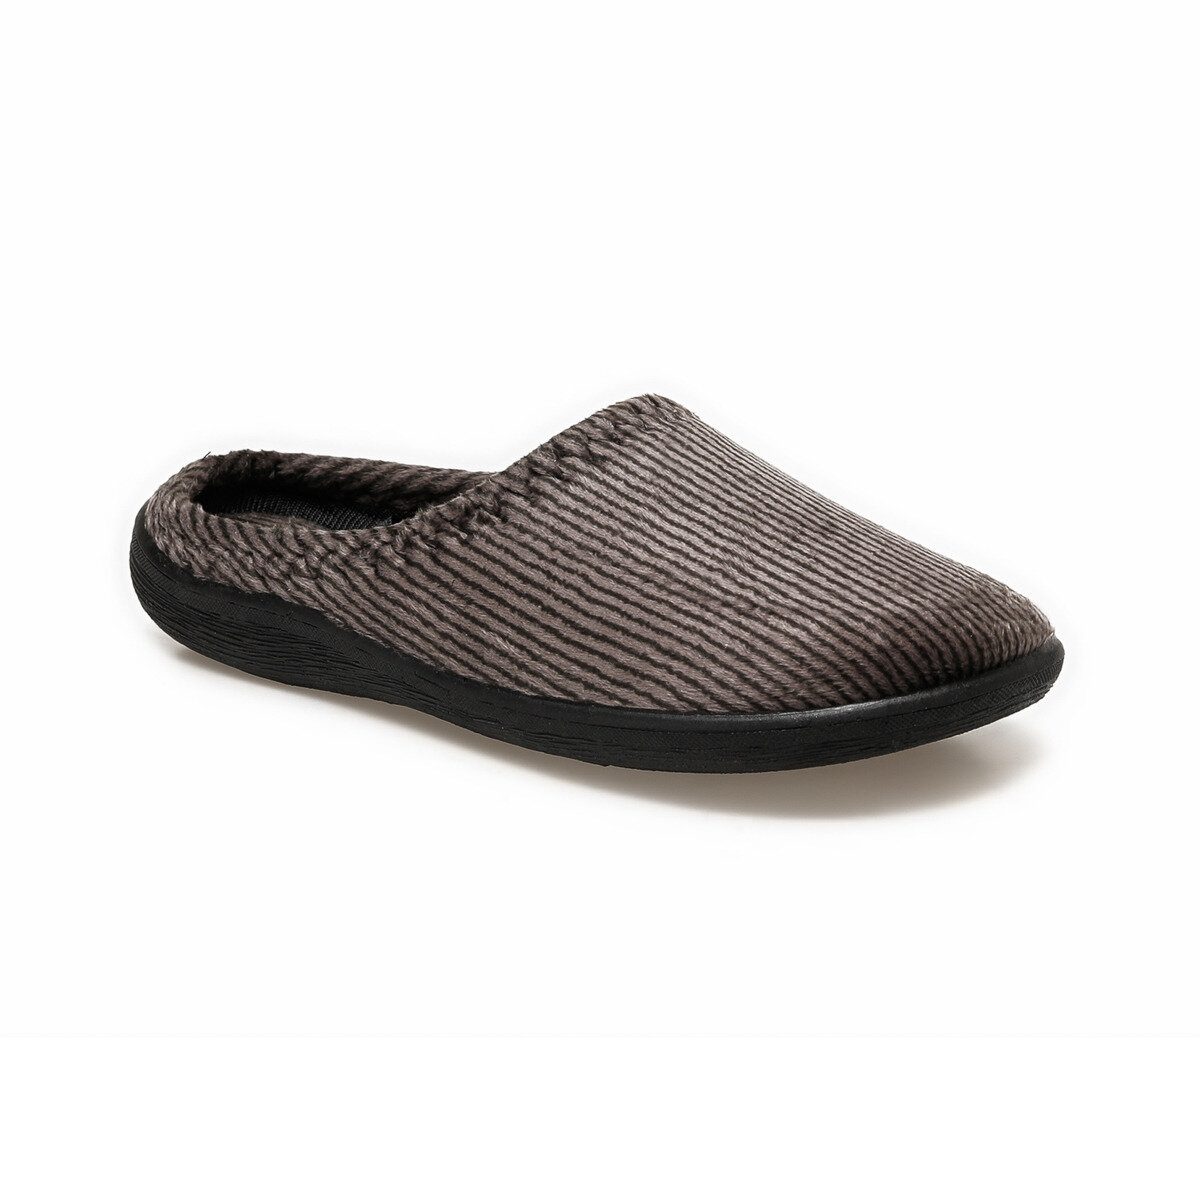 FLO Men Slippers Brown Men Comfortable Casual Home Slipper Мужские тапочки 92.600087.M Polaris